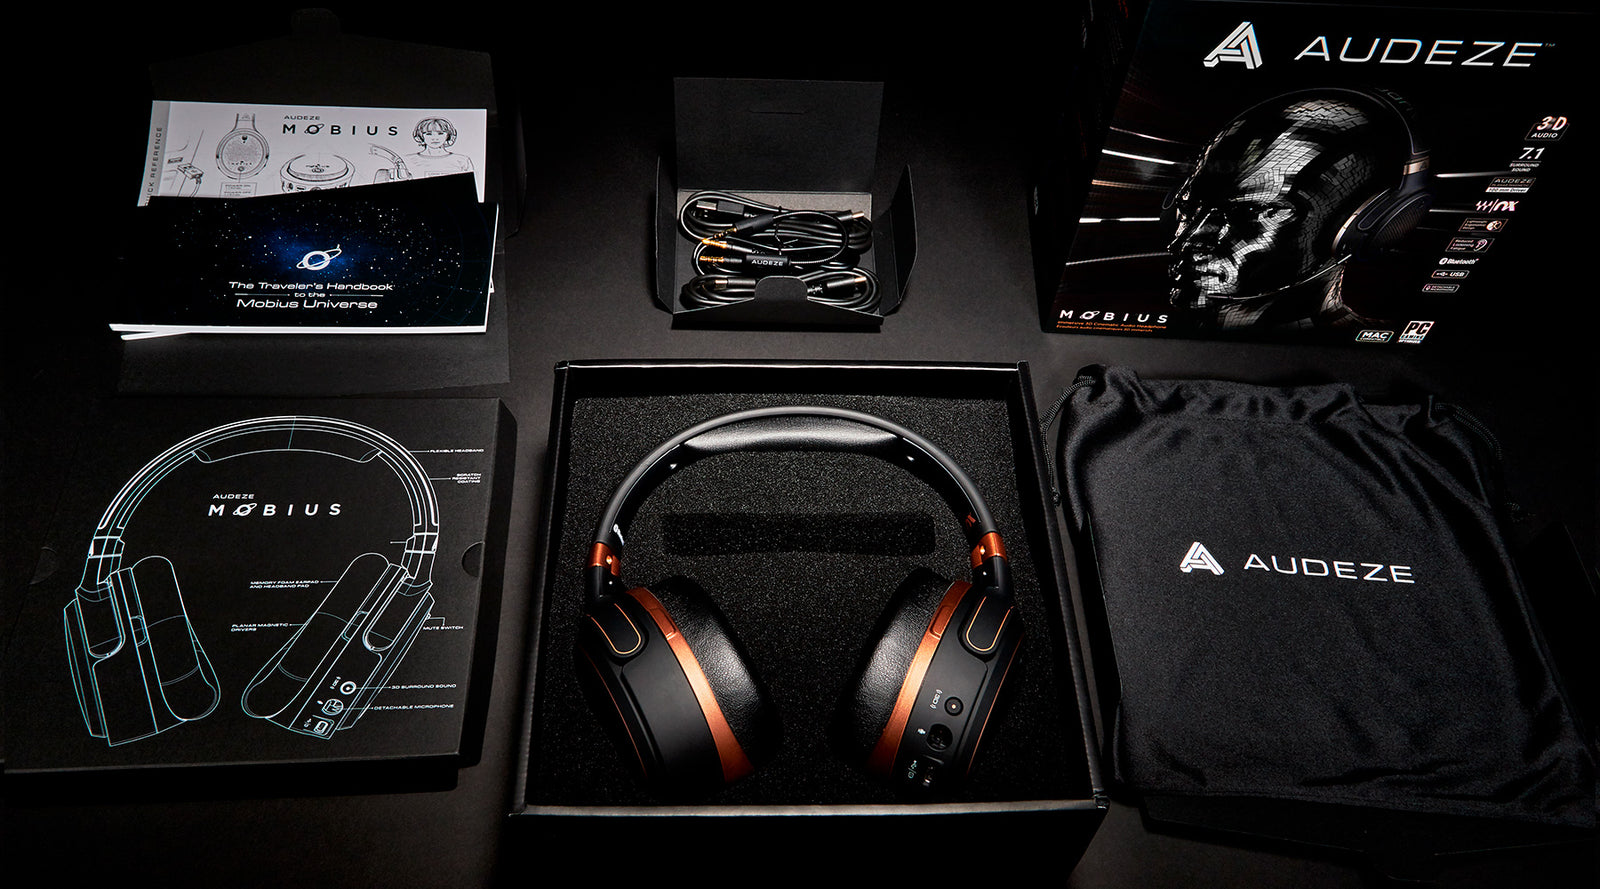 Gaming and Multimedia - Audeze LLC